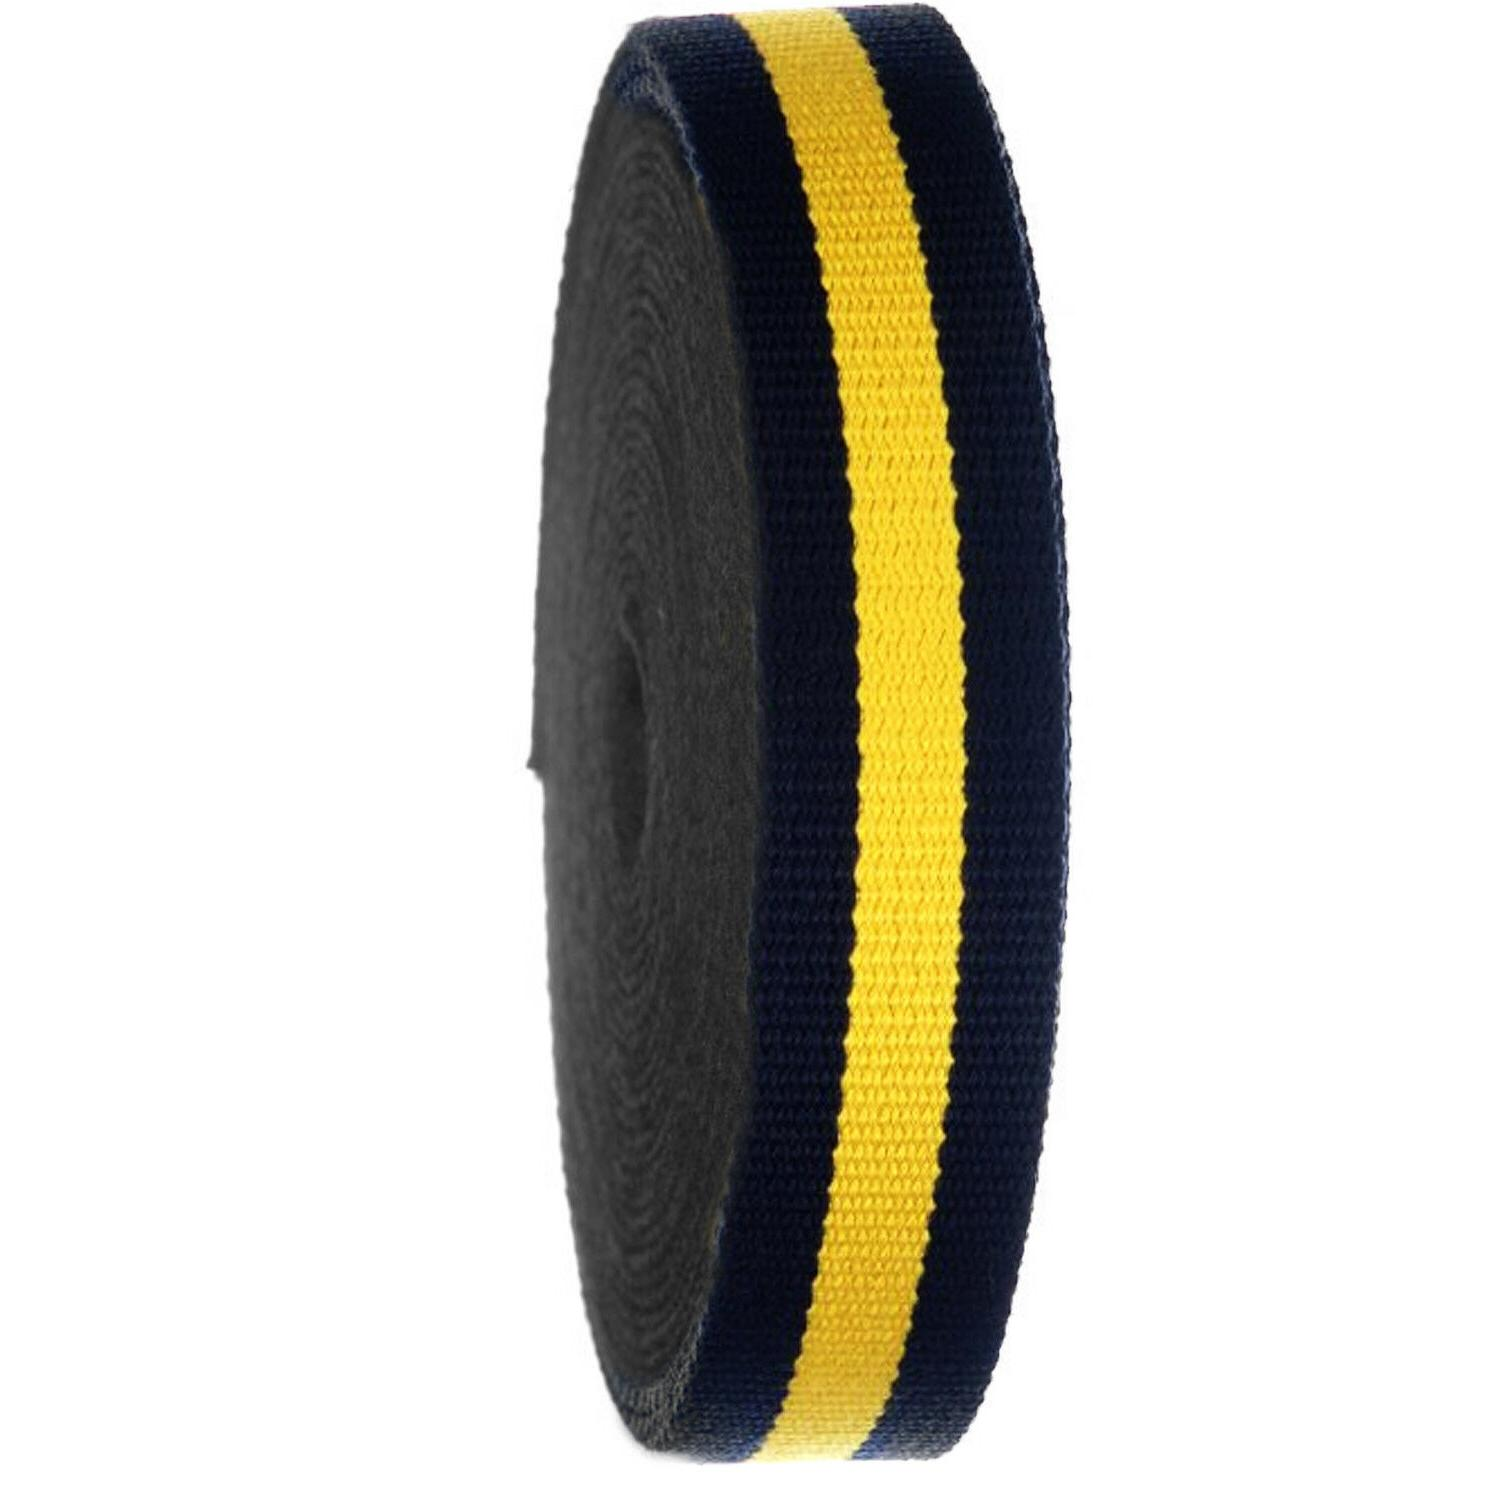 Striped Roll Strap Belts,